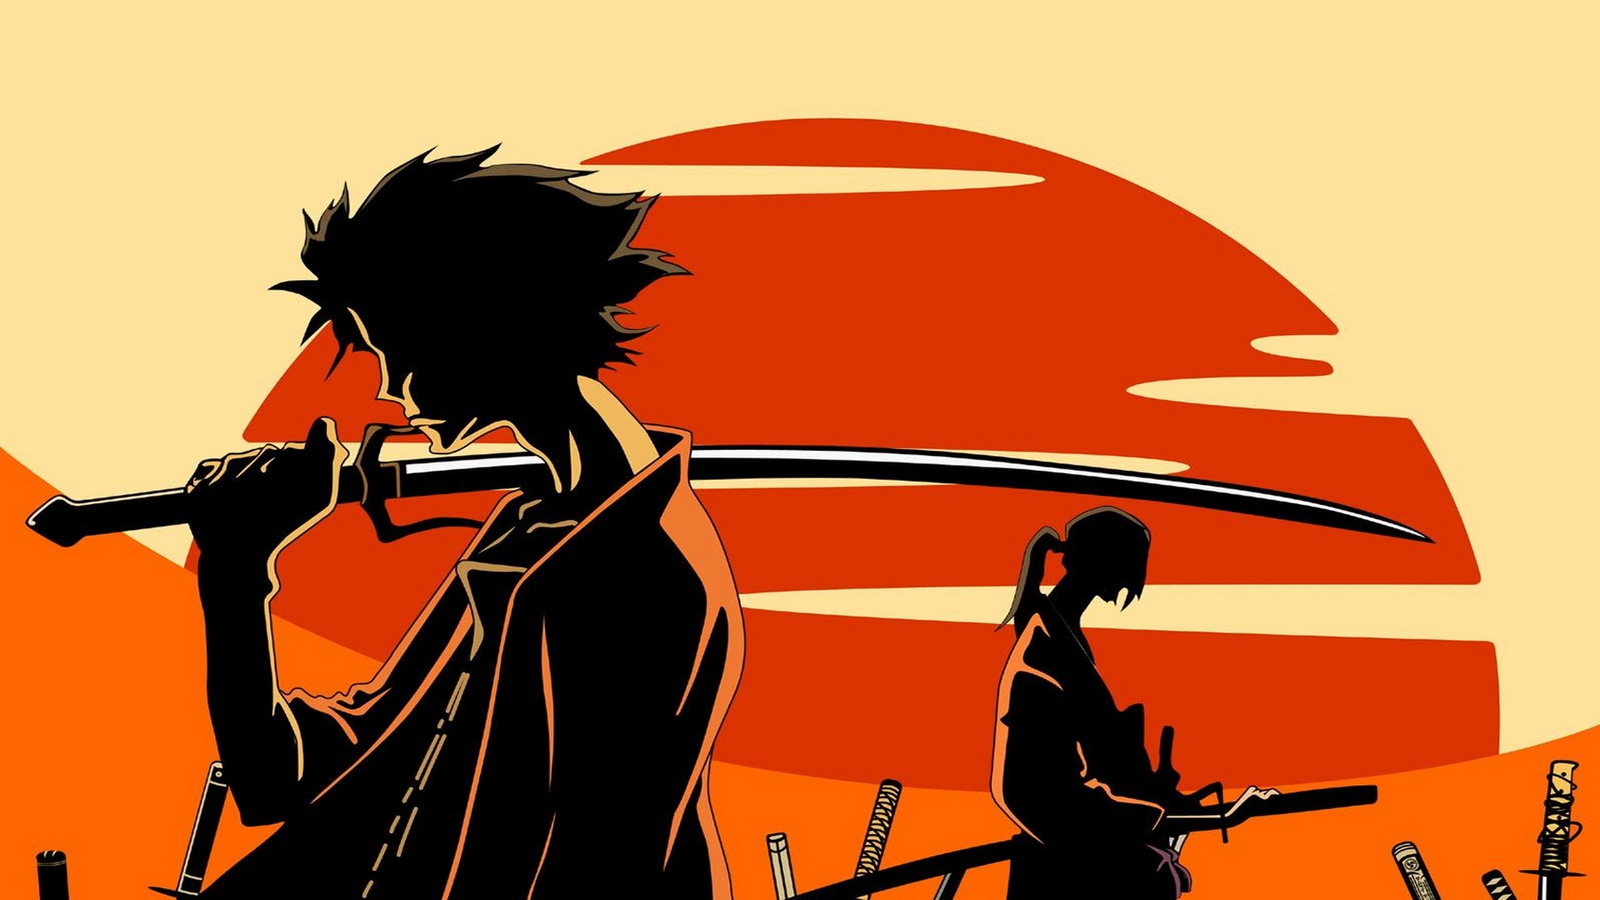 Самурай Чамплу/Samurai Champloo background